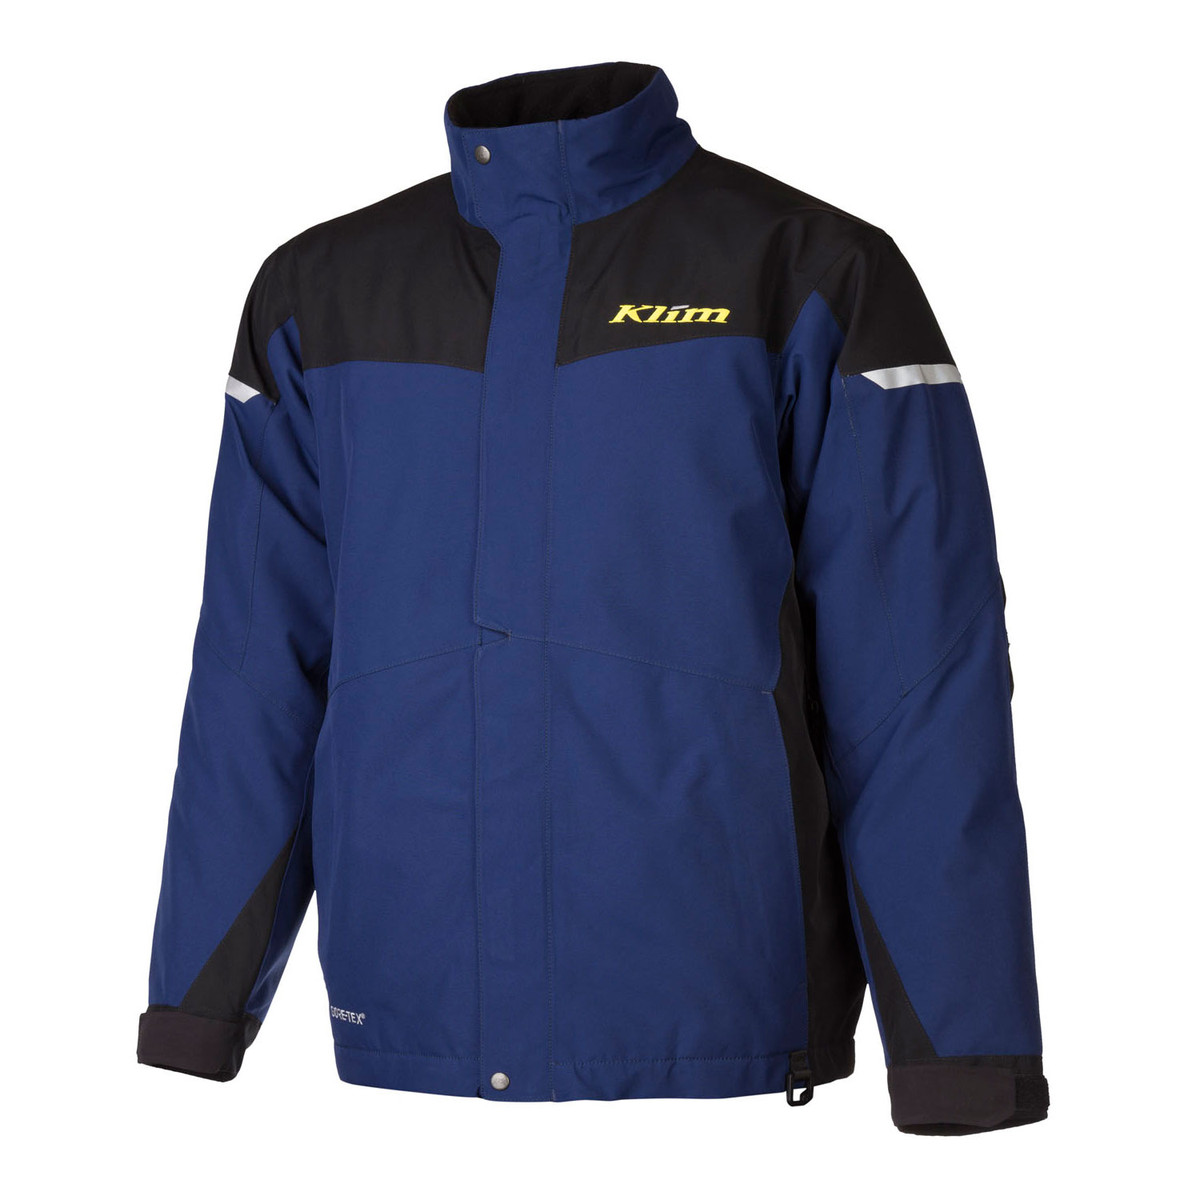 Klim Snowmobile Jackets and Parkas